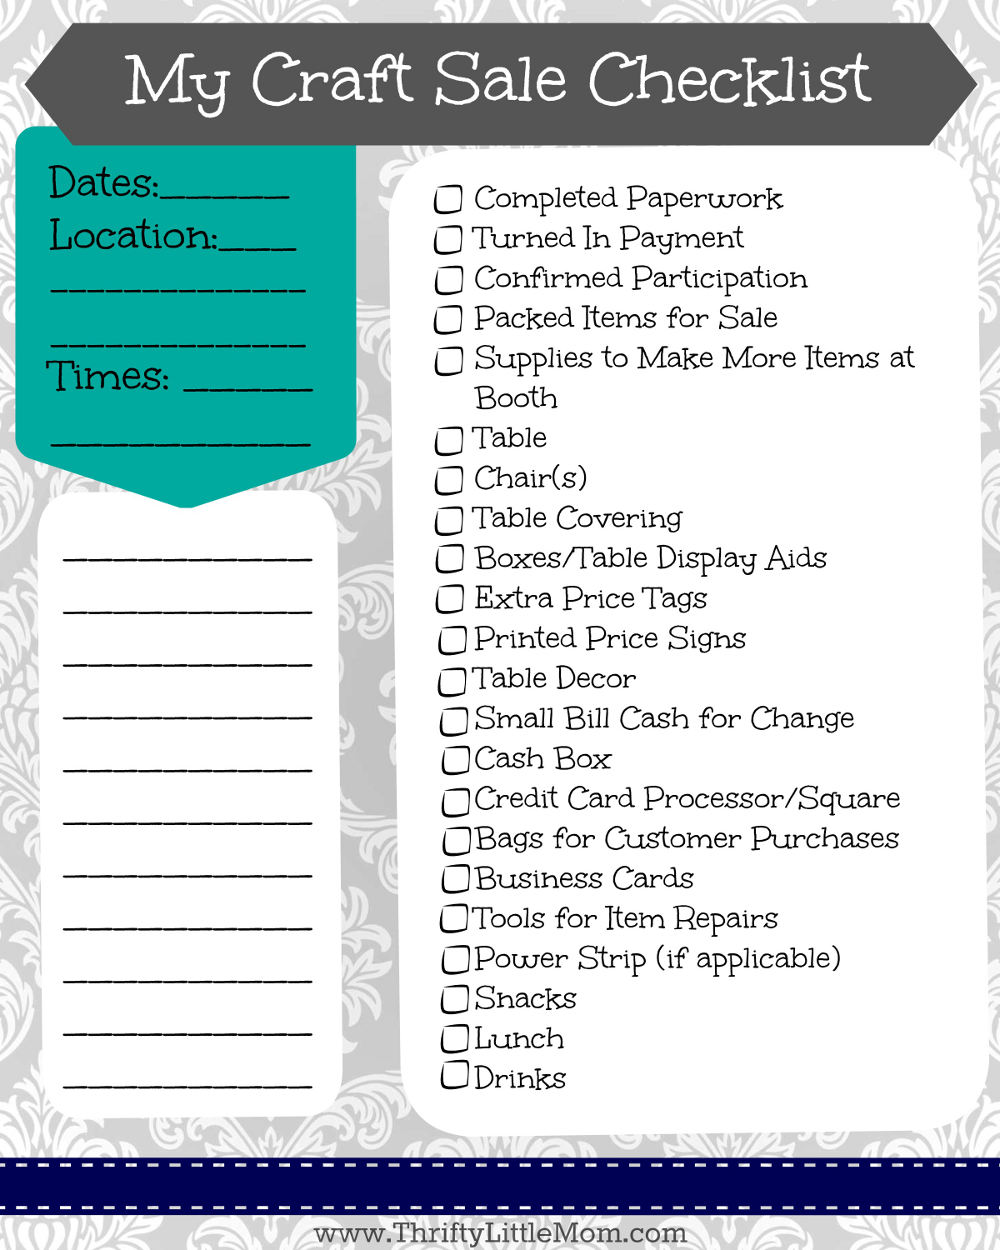 My Craft Sale Checklist